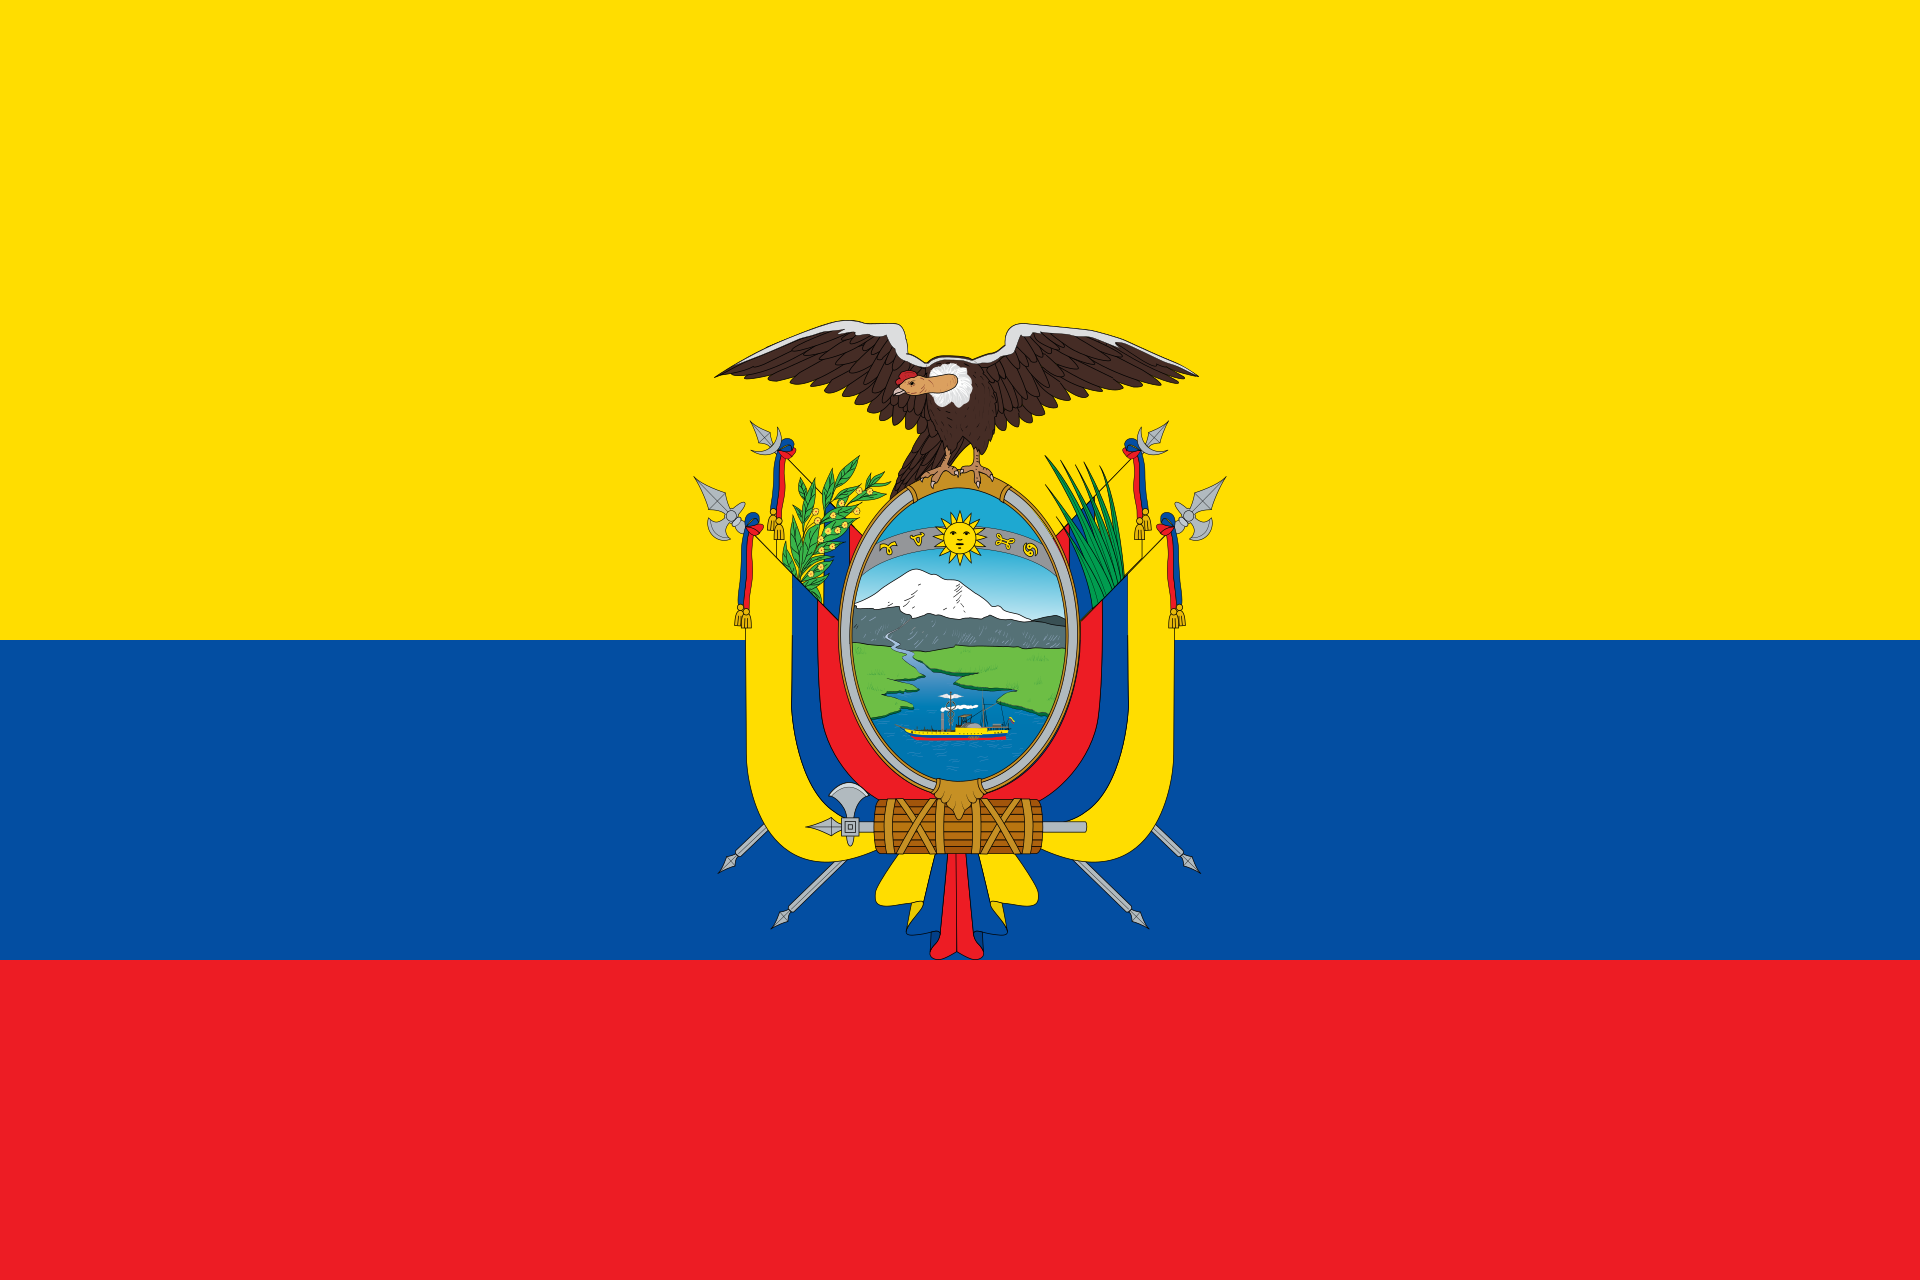 Distribuidor exclusivo para Ecuador